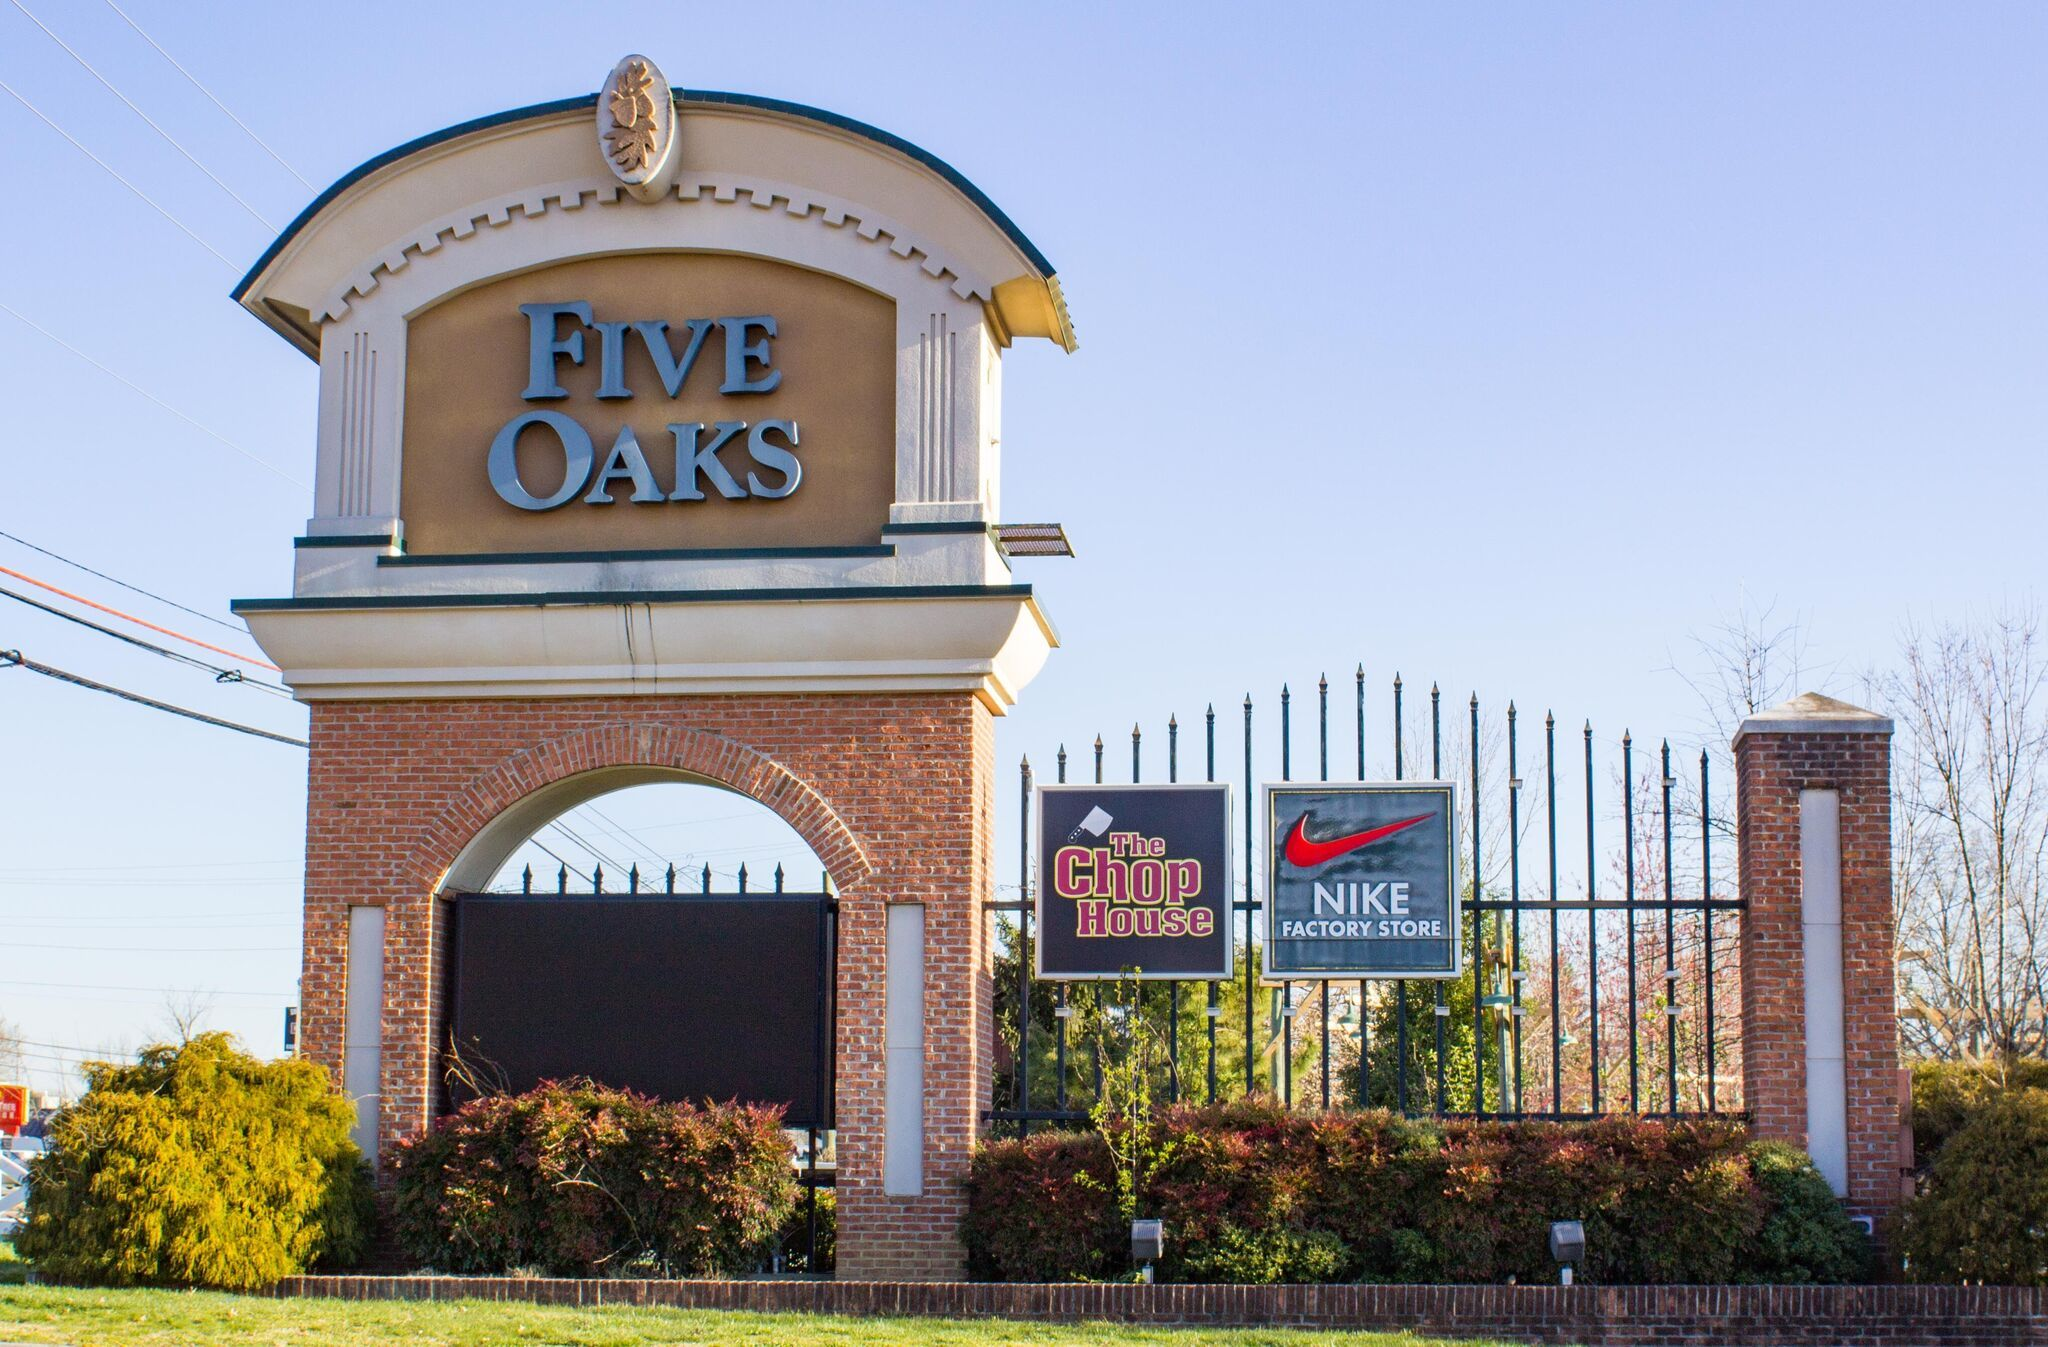 Tanger Outlet Center At Five Oaks In Sevierville Is The Premiere Outlet Mall Of The Smokies With Some Of The Best Outlet Prices Outlet Mall Outlet Center Oaks